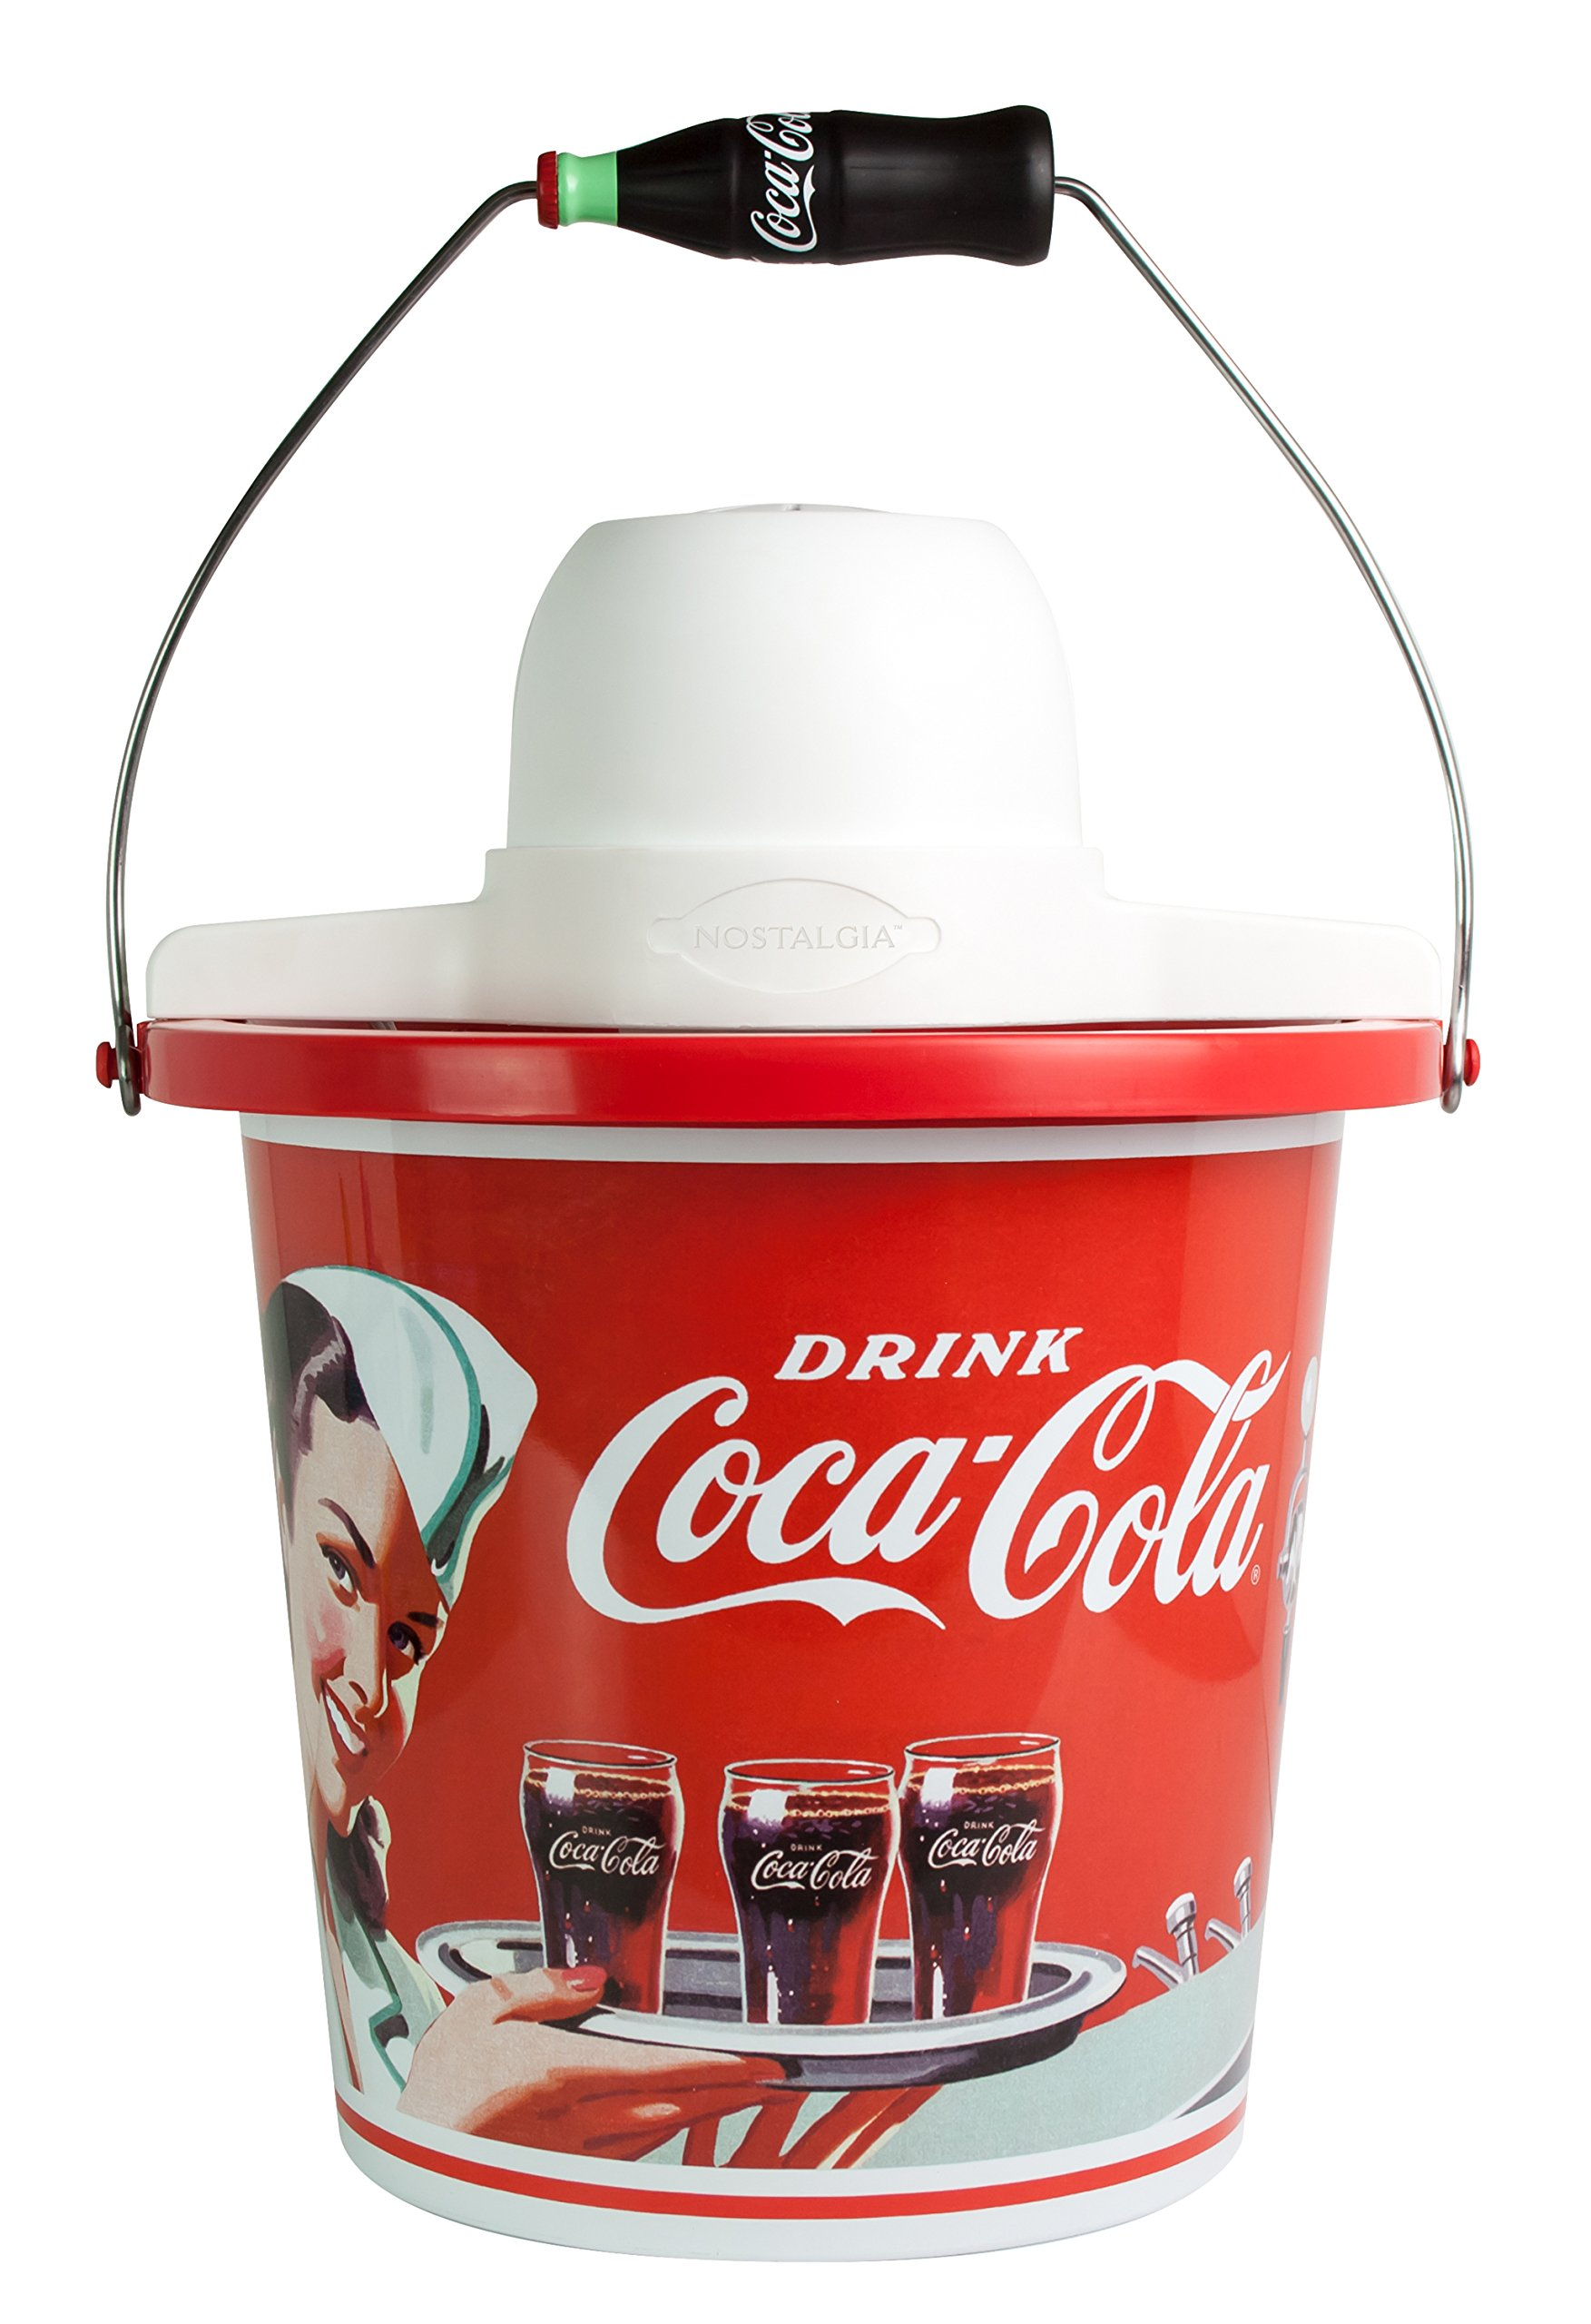 Nostalgia ICMP400COKE Coca-Cola 4-Quart Ice Cream Maker by Nostalgia